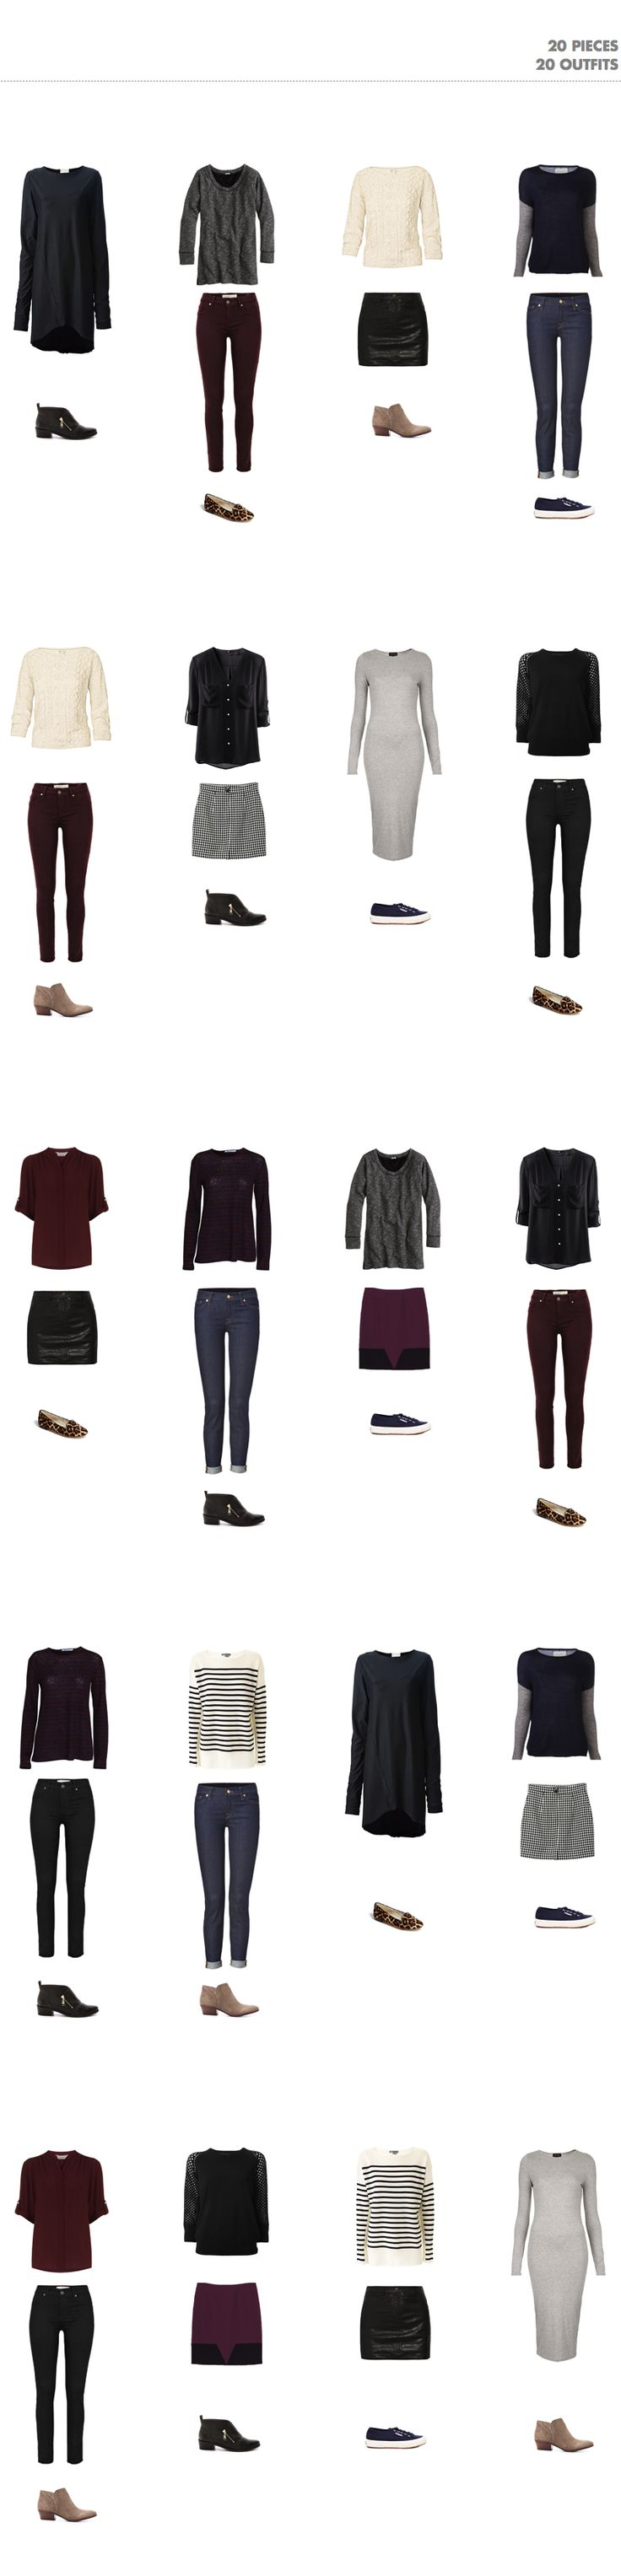 20 outfits with 20 pieces (into-mind) | SUMMER: http://into-mind.com/2013/07/14/20-pieces-20-outfits-part-i-building-a-wardrobe-structure/ | http://into-mind.com/2013/07/16/20-pieces-20-outfits-part-ii-the-outfits/